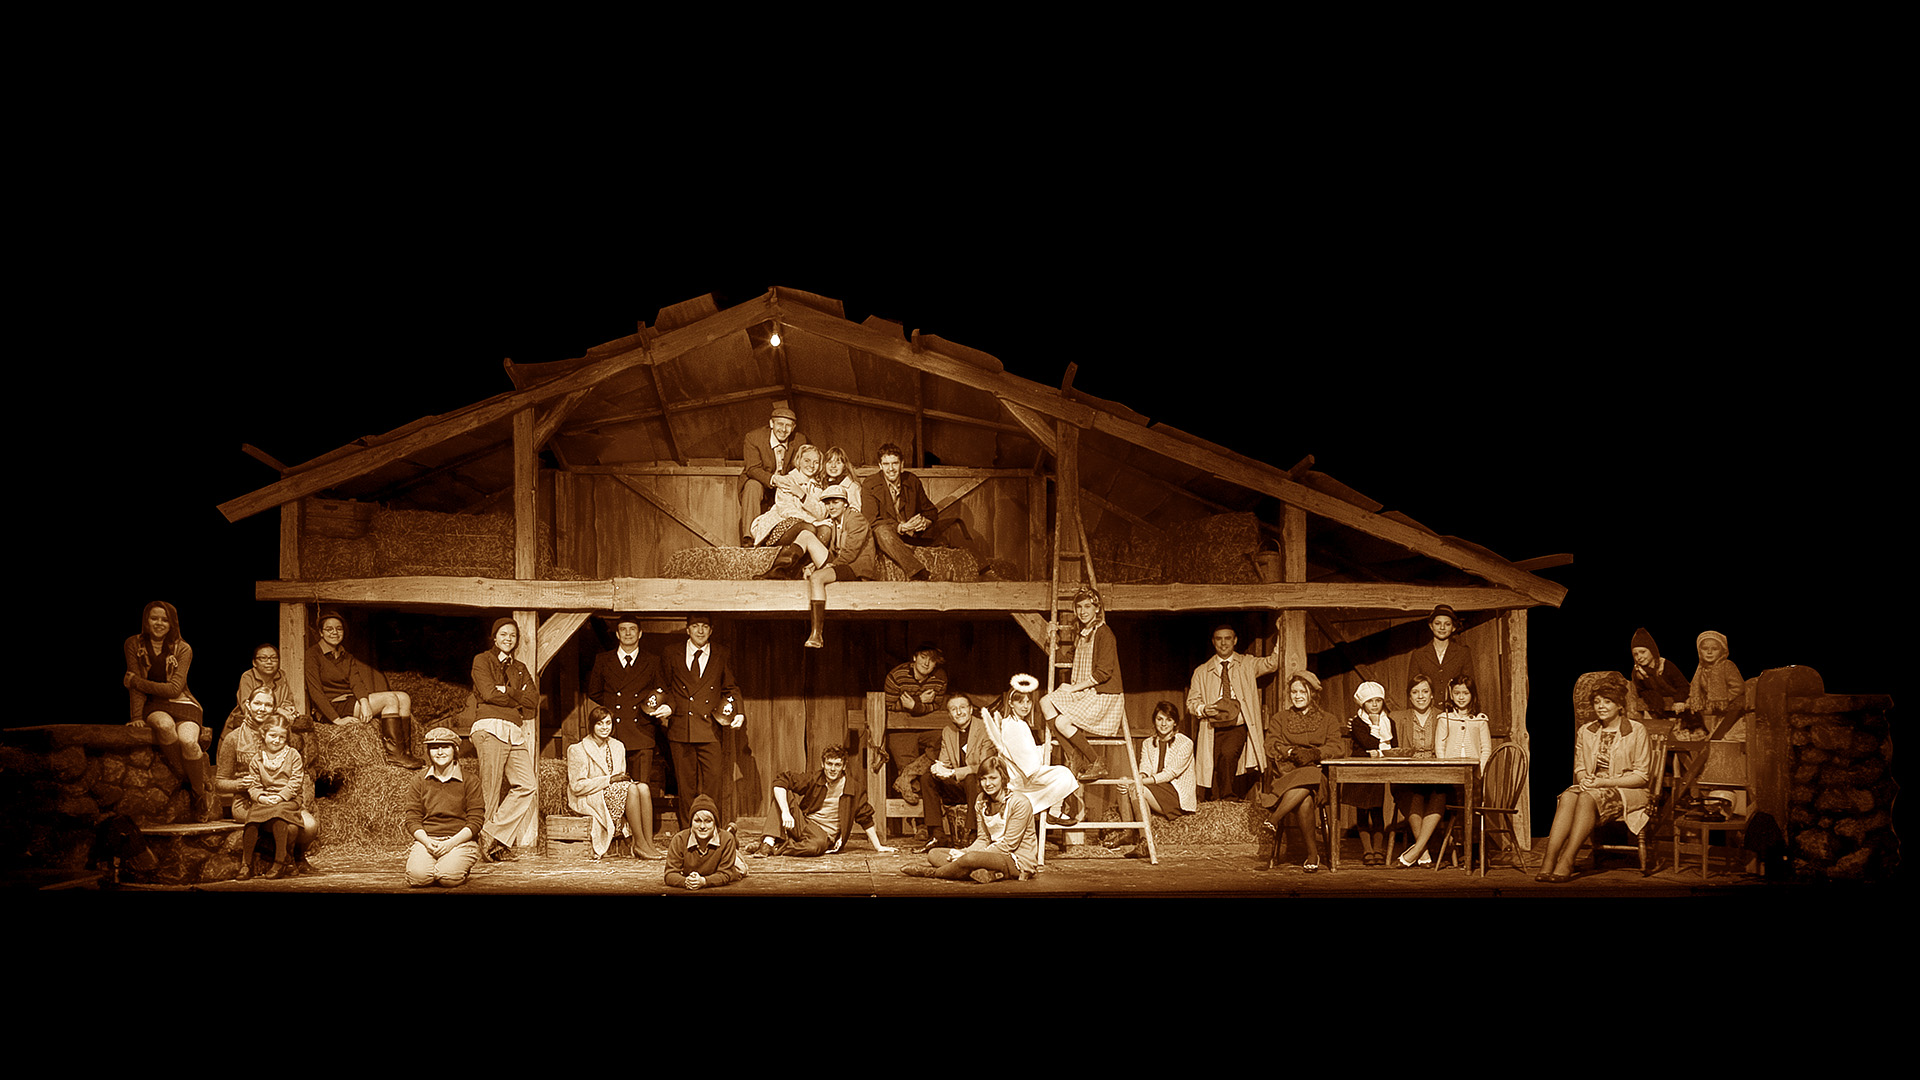 The Barn: Casterton School production of Whistle Down the Wind. WW001 Sepia